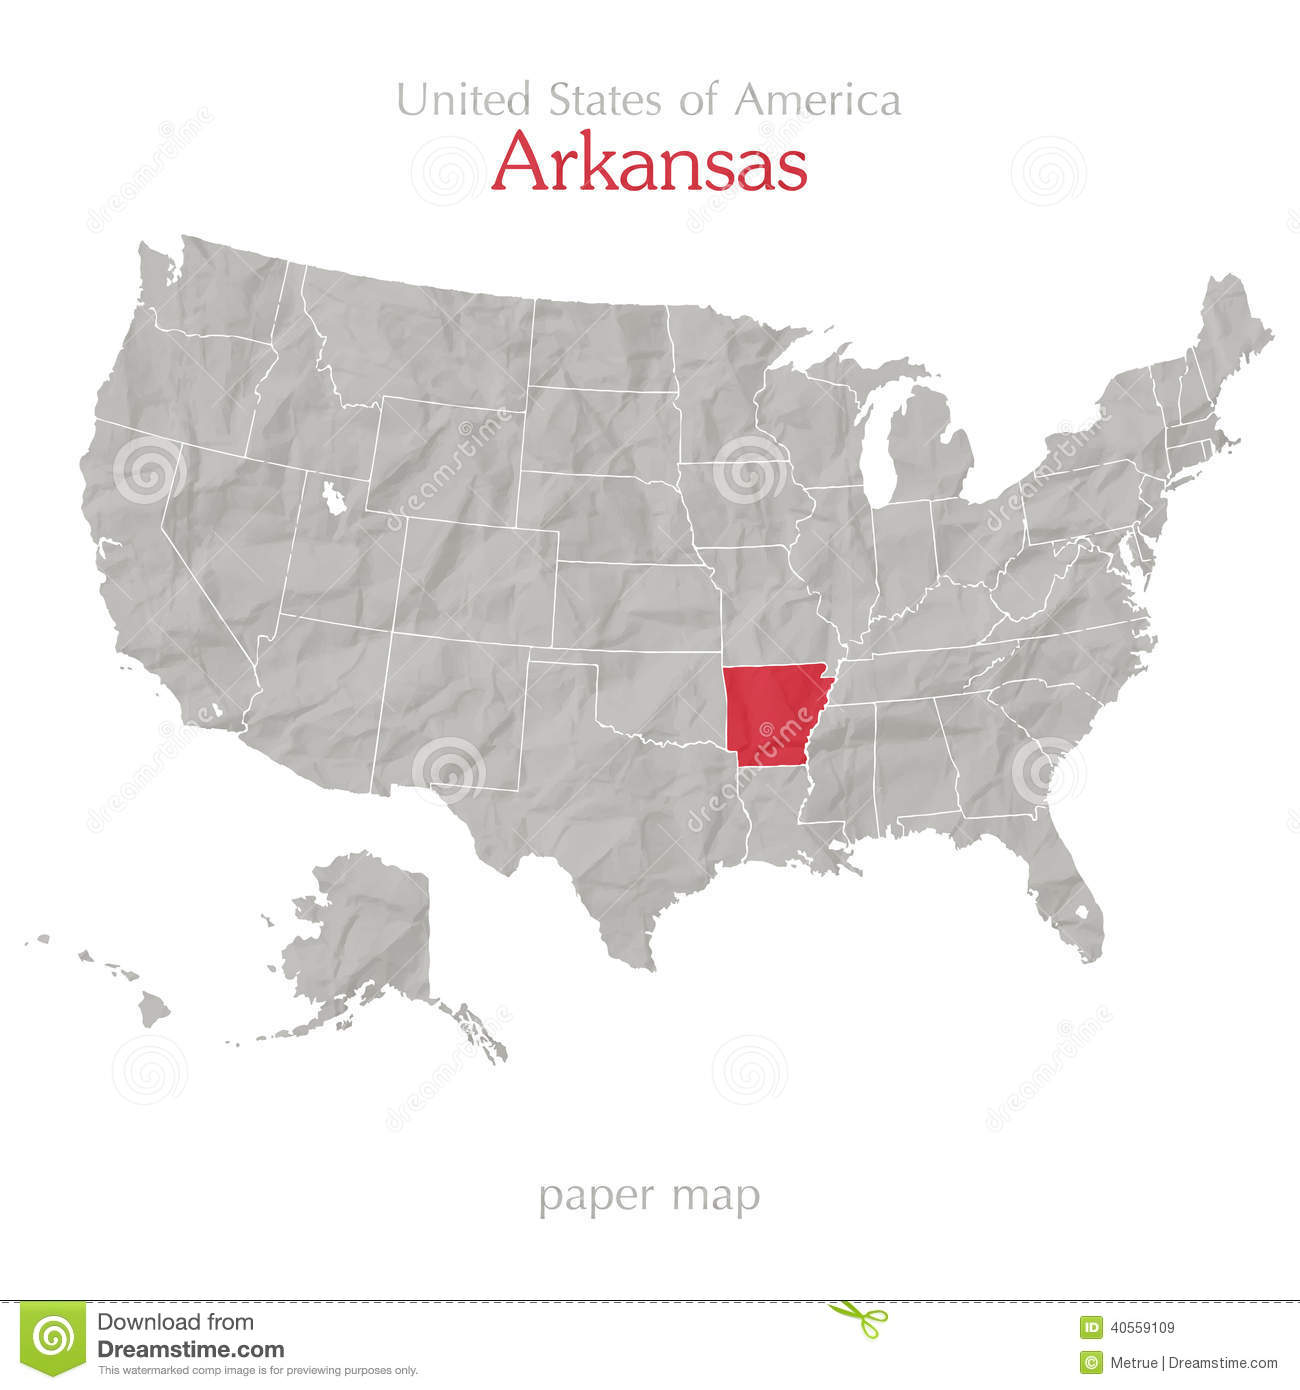 Map Of Ar Banner Pictures To Pin On Pinterest PinsDaddy - United states map arkansas